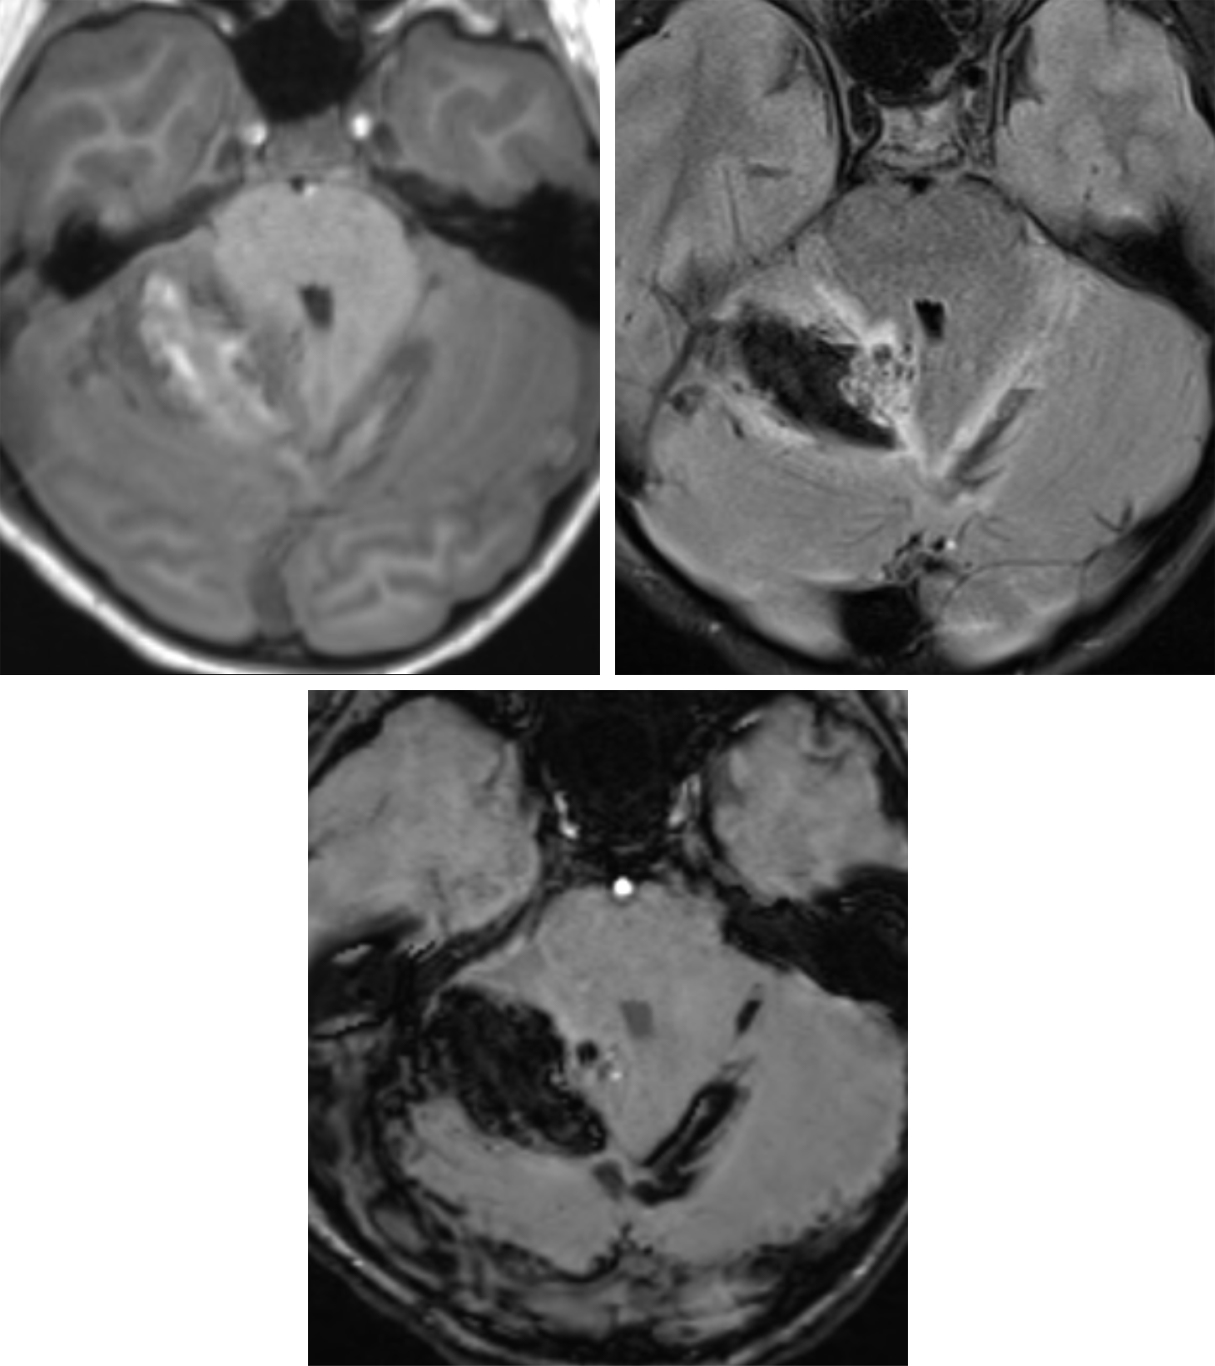 Figure 2: T1-weighted (top left), FLAIR (top right), and SWI (bottom row) axial MR images illustrate mixed-stage blood products of subacute parenchymal hematoma within the superior right cerebellar hemisphere with associated SAH within the adjacent cerebellar sulci and crossing midline. Nidiform flow voids are present at the medial aspect of the hematoma on the FLAIR image, consistent with an underlying cerebellar AVM.